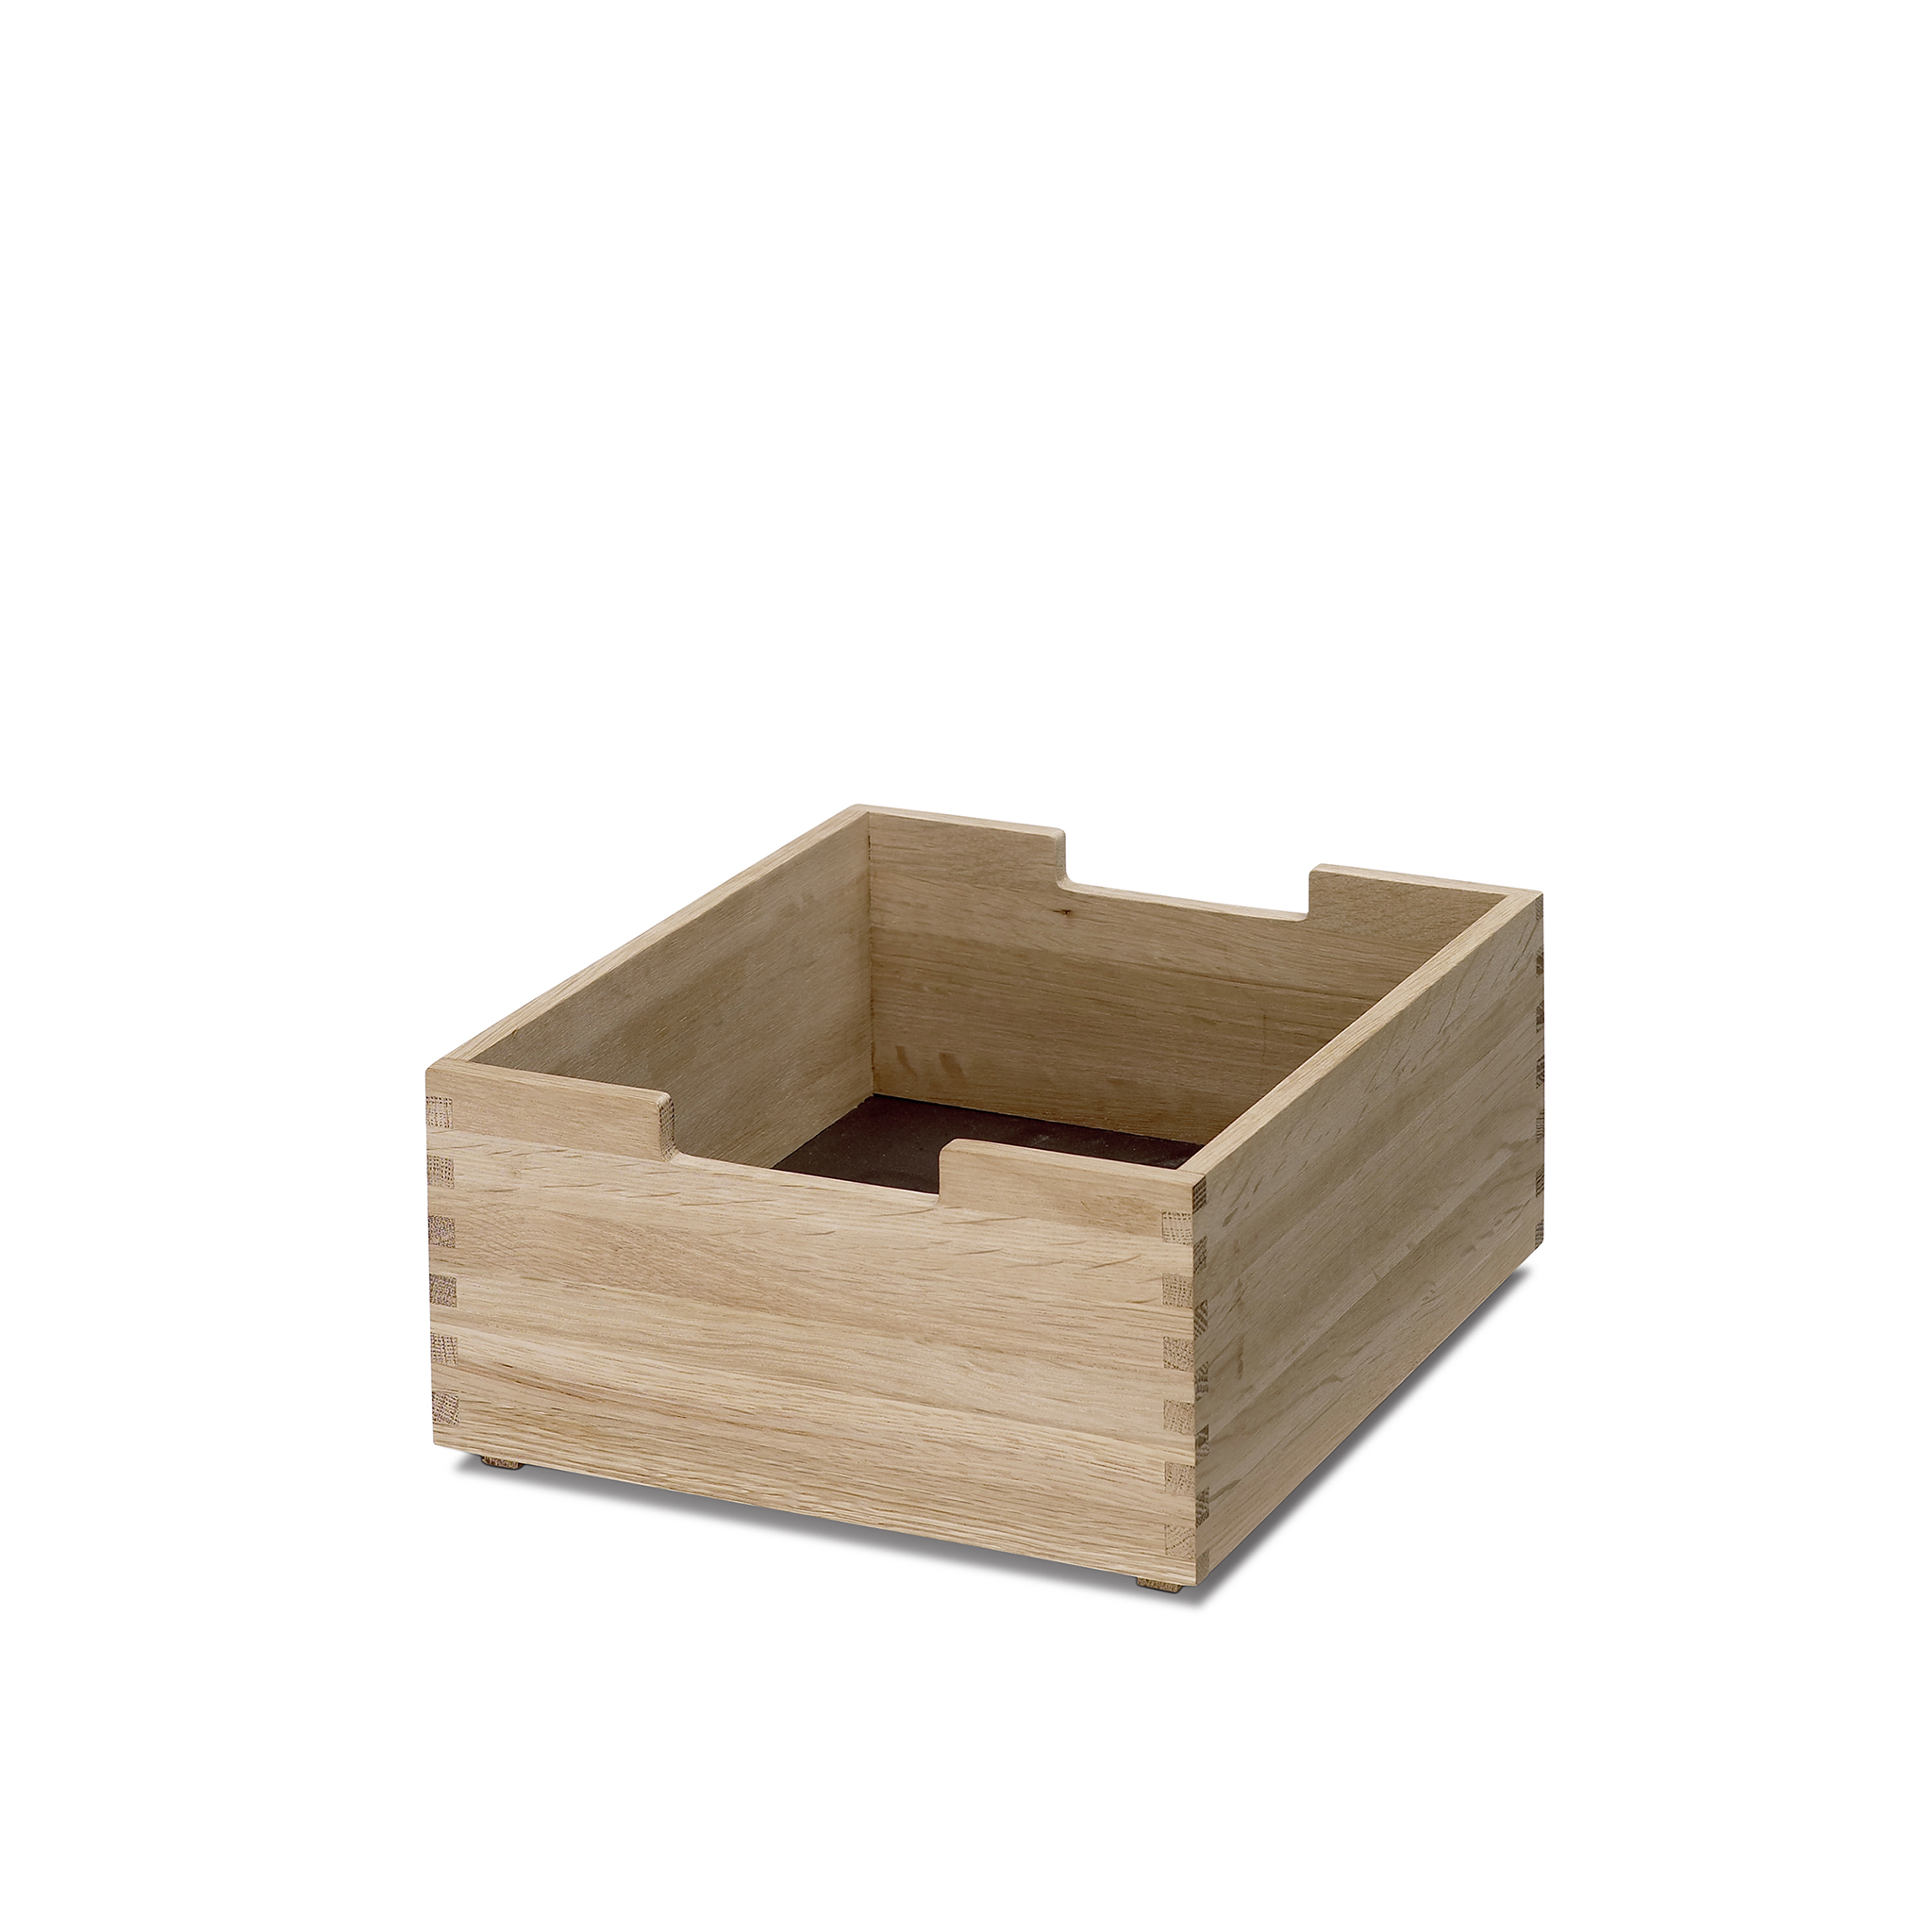 Cutter Box by Skagerak